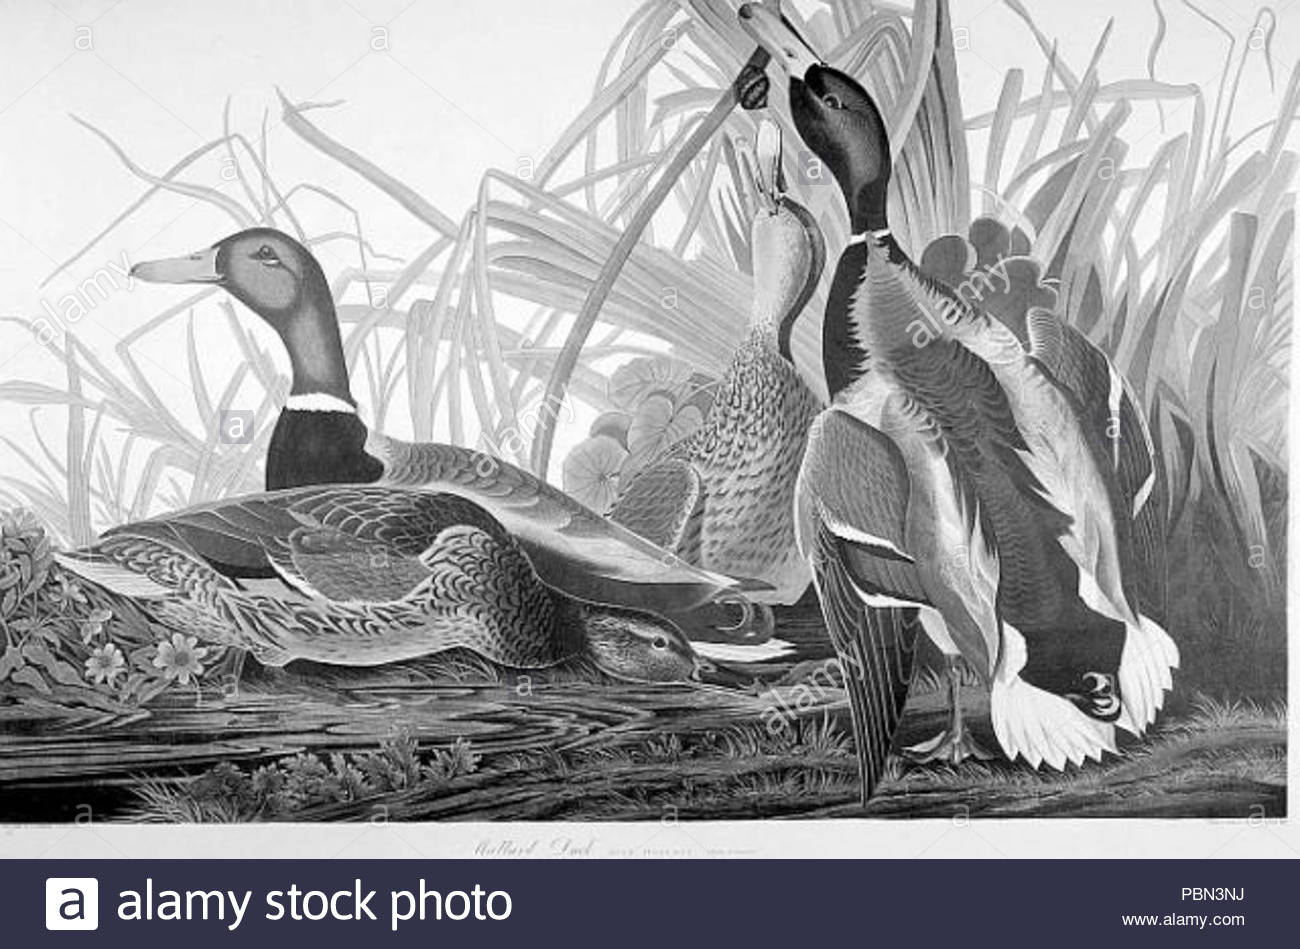 988 Mallard Ducks Drawing Stock Photo  213749582